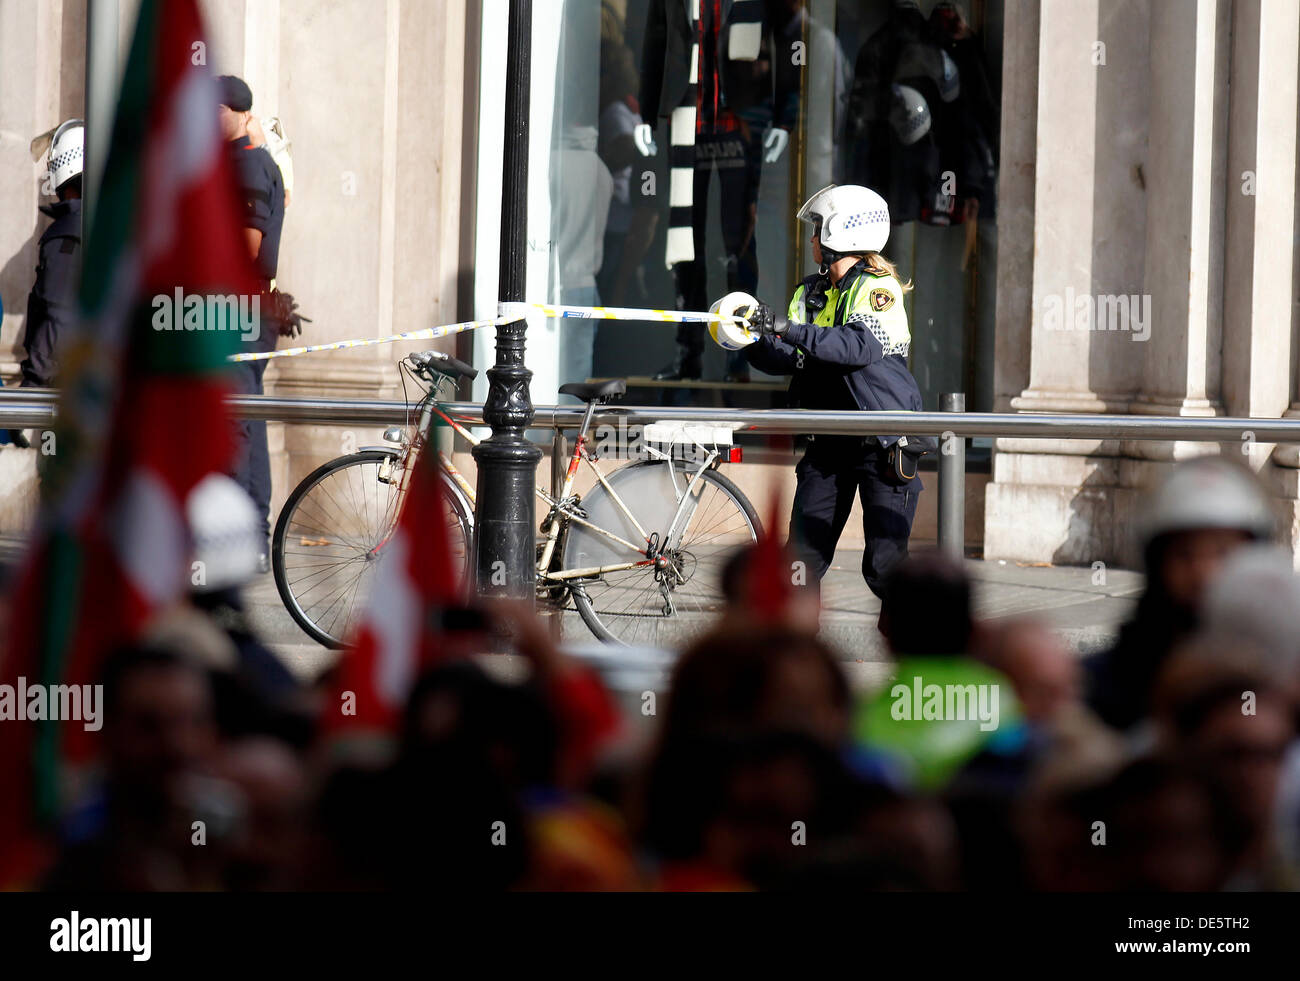 Barcelona, Spain. 11th September 2013. (EXCLUSIVE COVERAGE) Police evict the marchers by independecia of catalunia to alert a parcel bomb in the famous shopping street 'Passeig de Gràcia' Finally, it has been a false bomb alert on September 11, 2013 in Barcelona, ??Spain.  The Spanish region of Catalonia has been celebrating its national day known as La Diada amid demonstrations and renewed calls for independence. In an attempt to muster support for secession hundreds of thousands of people have formed a 400km long human chain across the region to press for a vote on independence from Spain. © - Stock Image